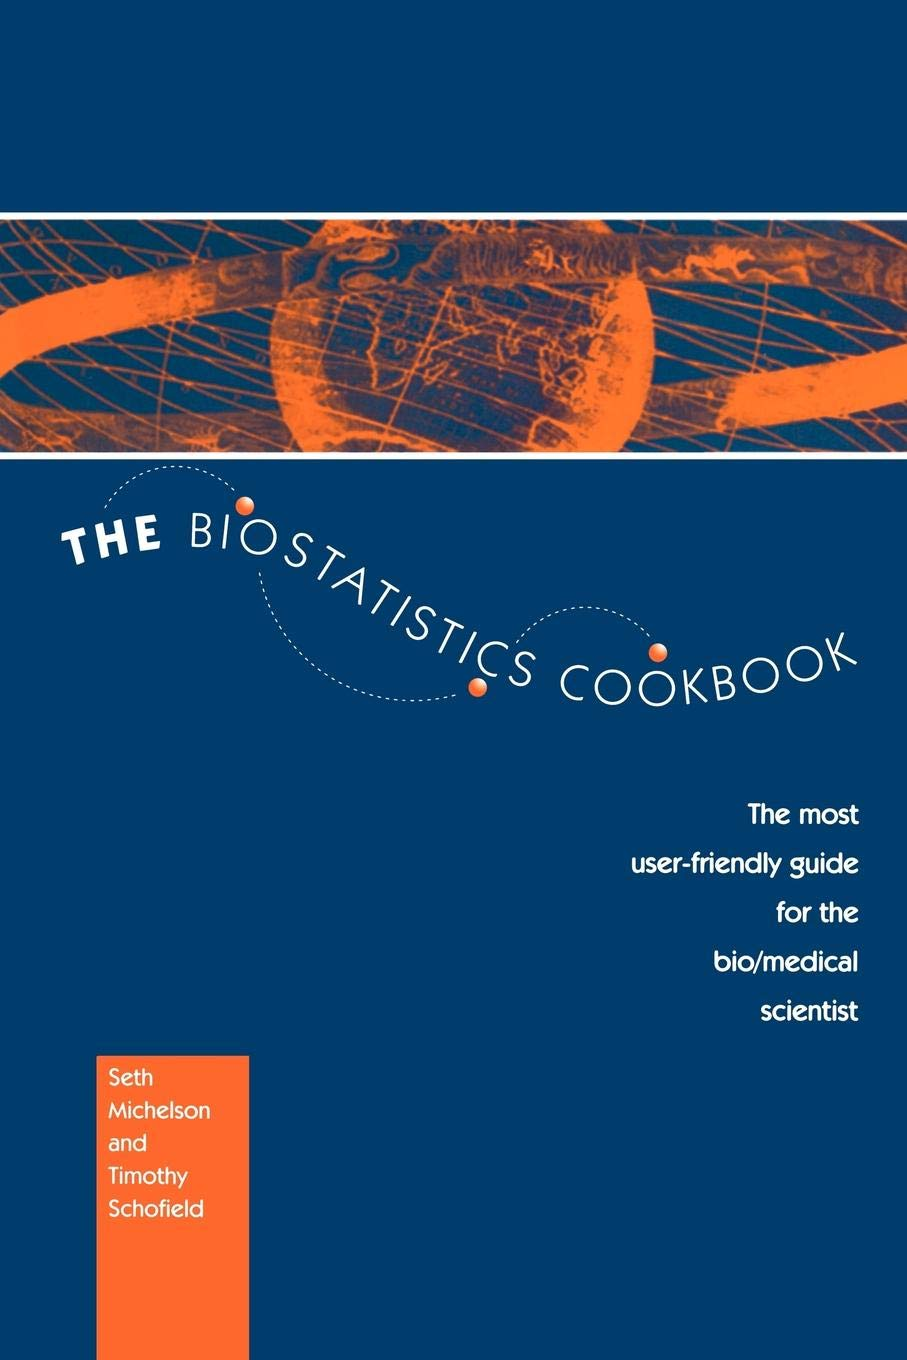 The biostatistics cookbook: the most user-friendly guide for the bio/medical scientist